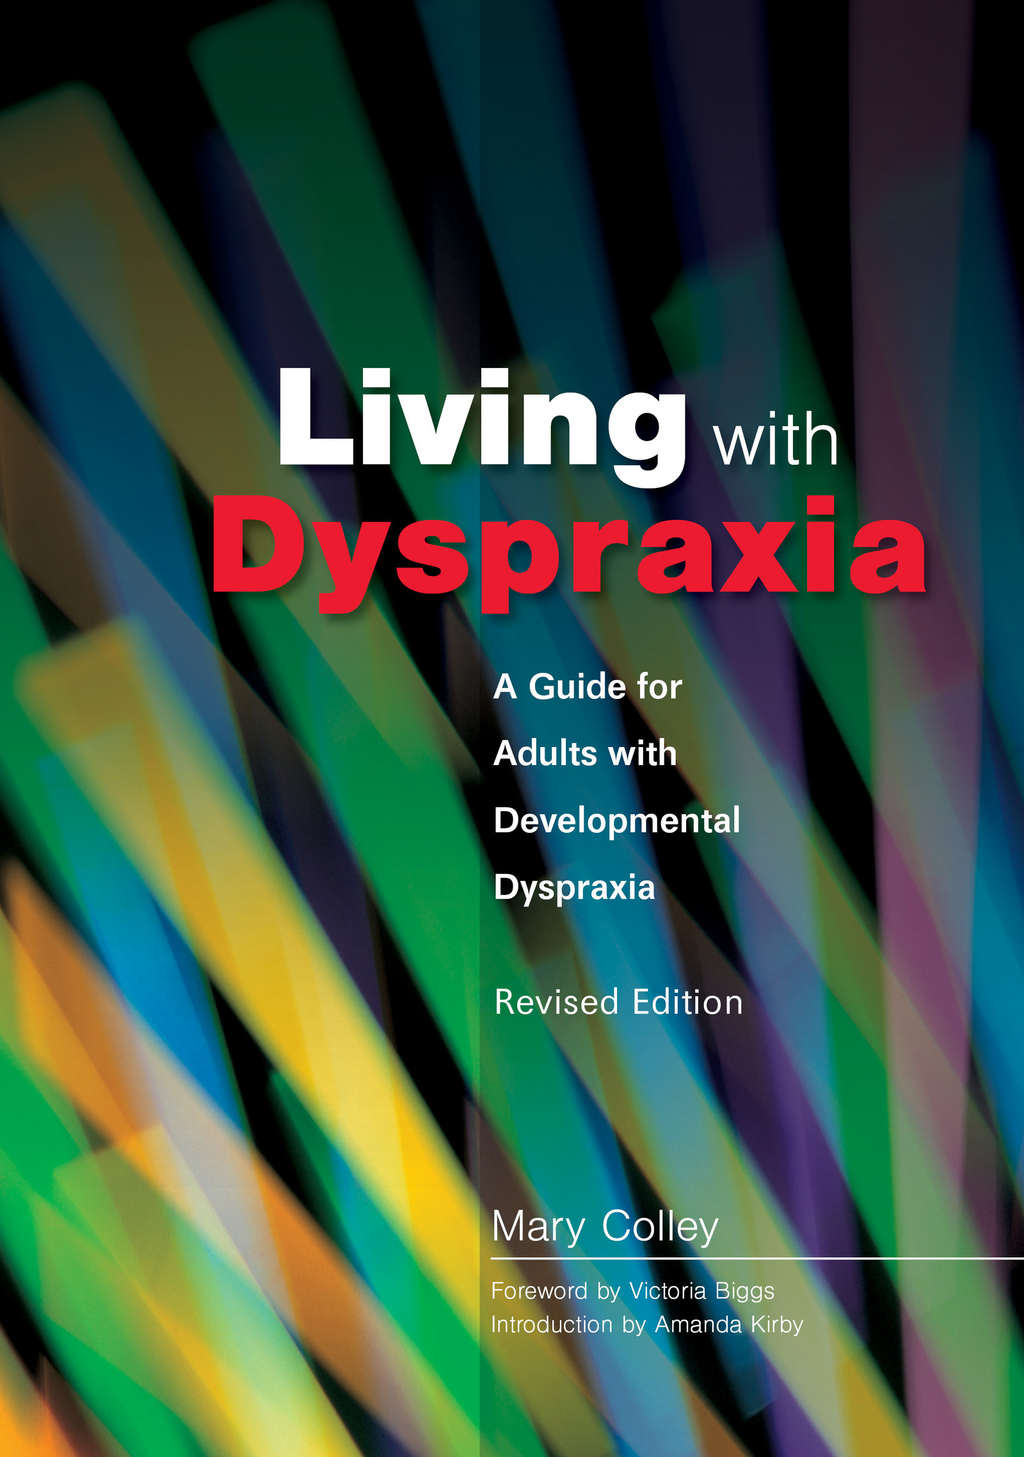 Living with Dyspraxia A Guide for Adults with Developmental Dyspraxia - Revised Edition Revised Edition